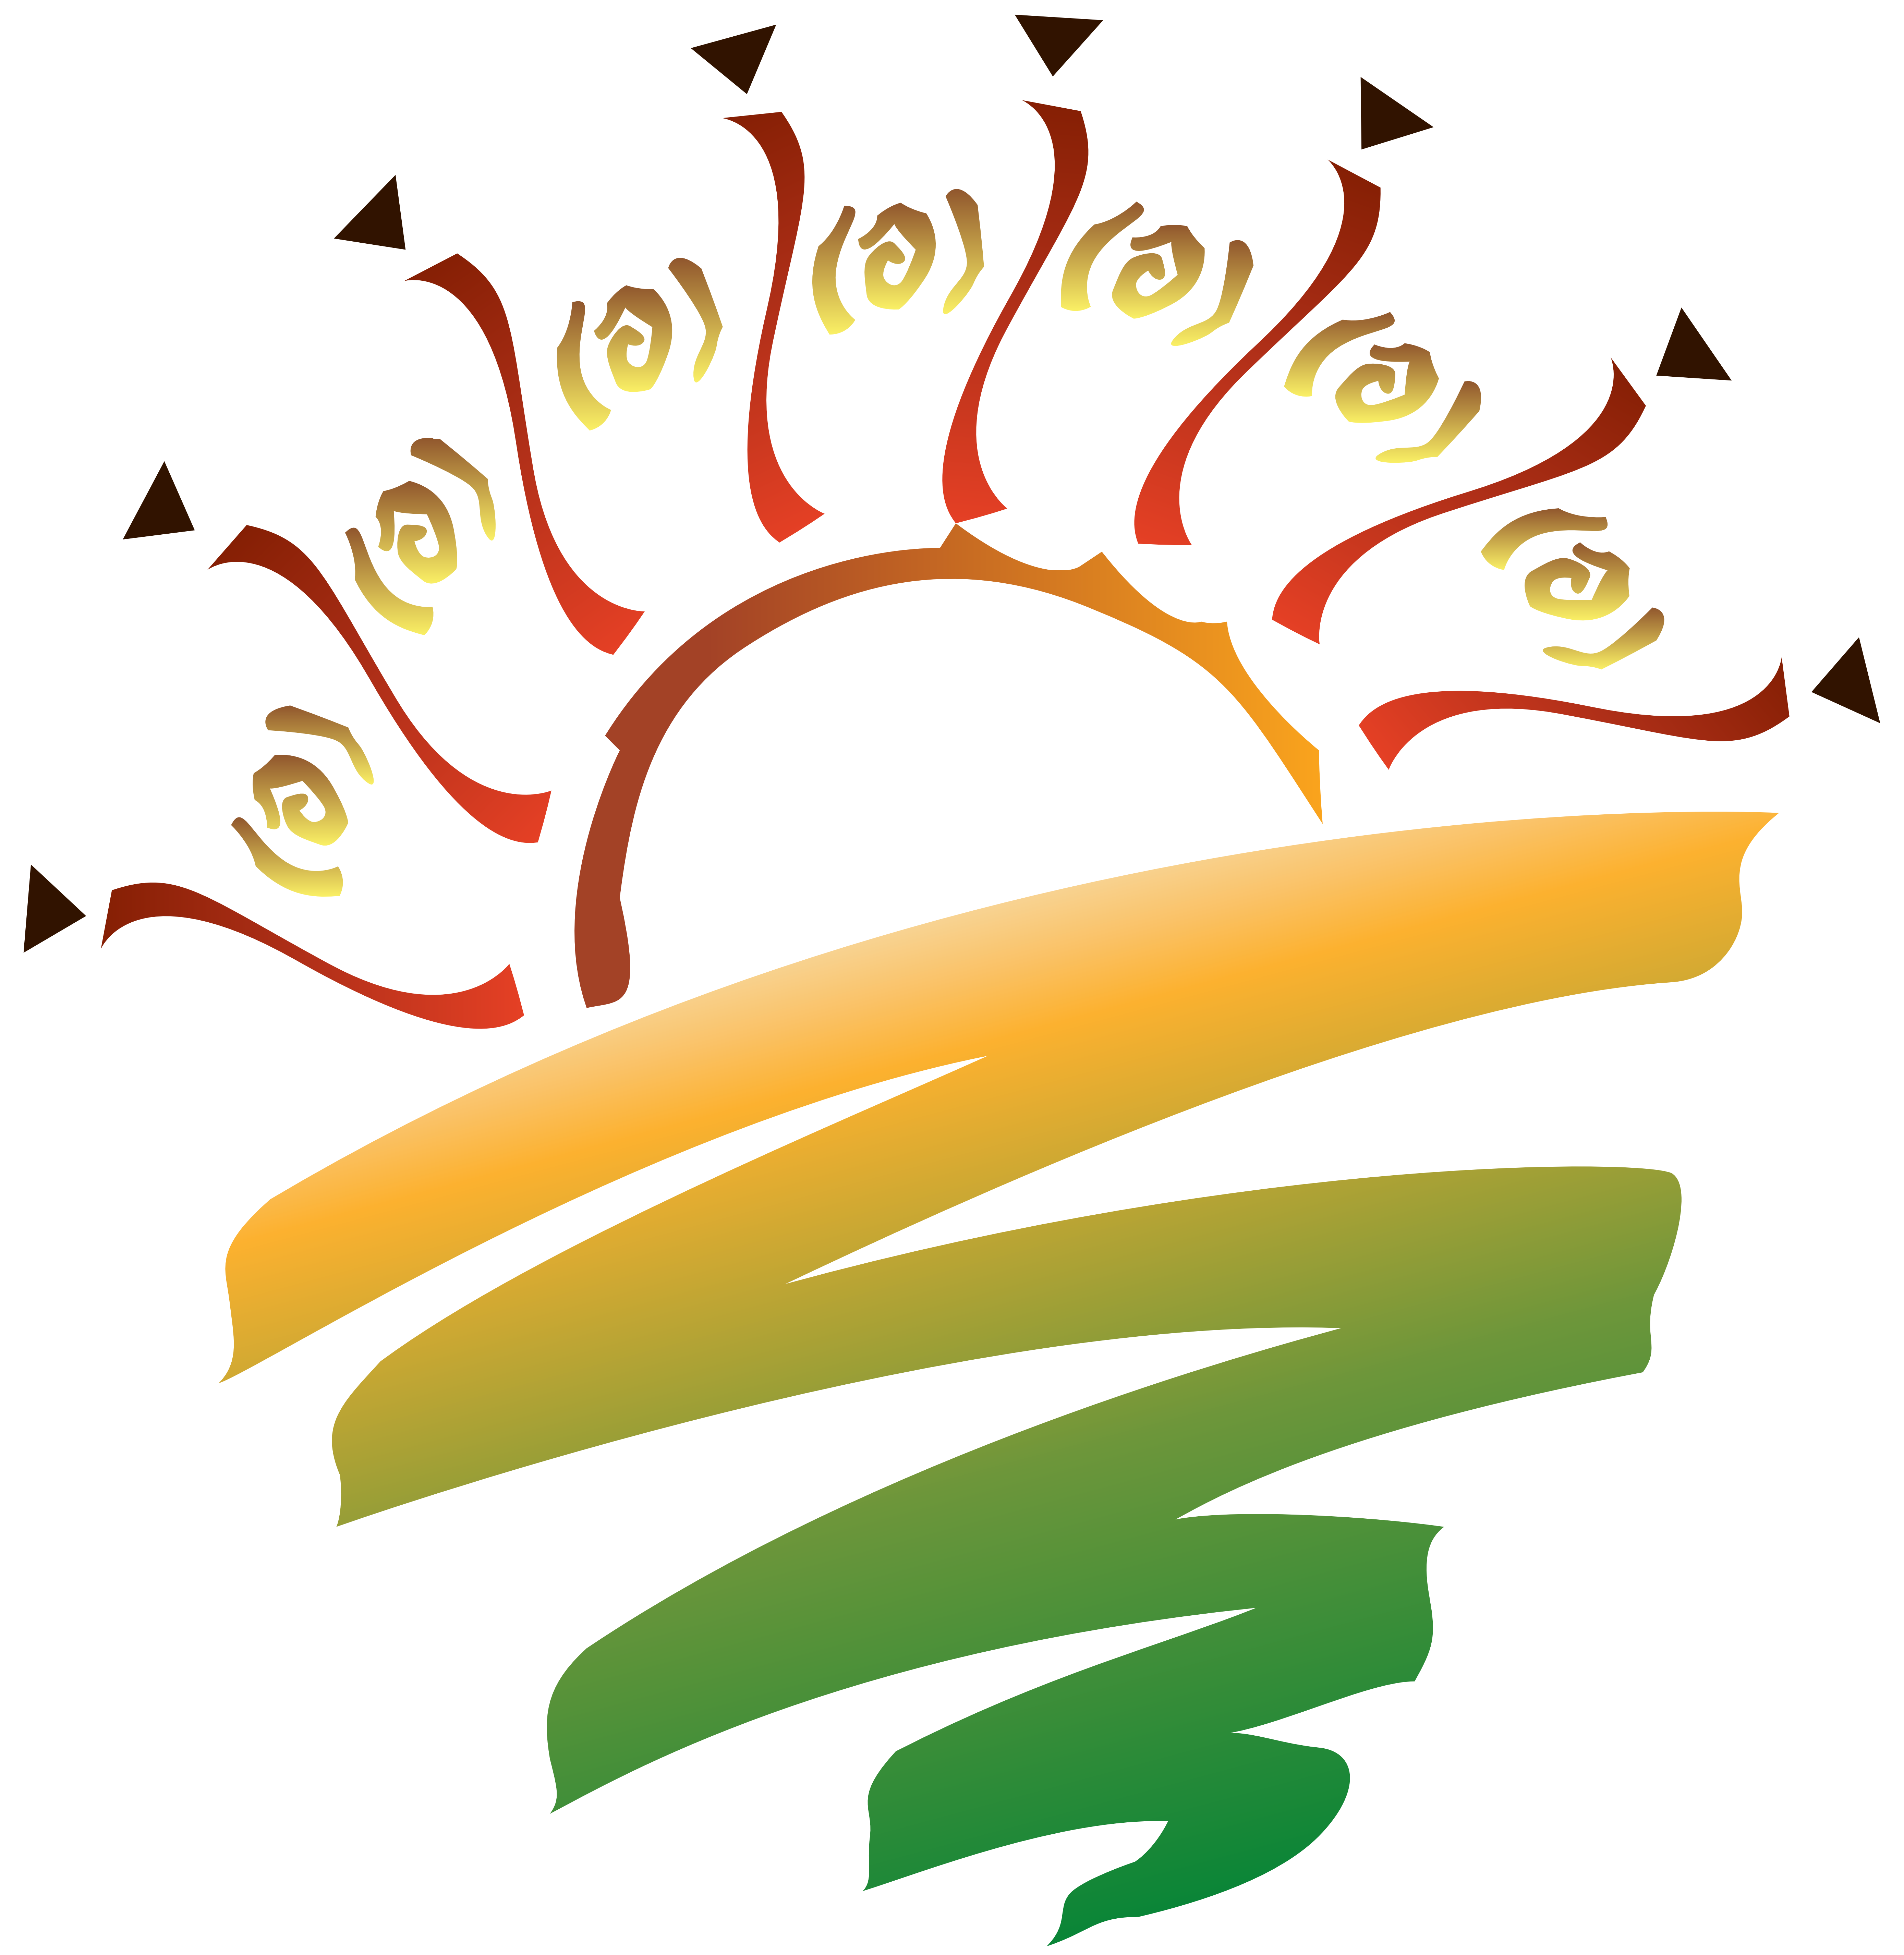 Palm tree sunset clipart png freeuse stock Palm Tree Sunset Clipart | Clipart Panda - Free Clipart Images png freeuse stock